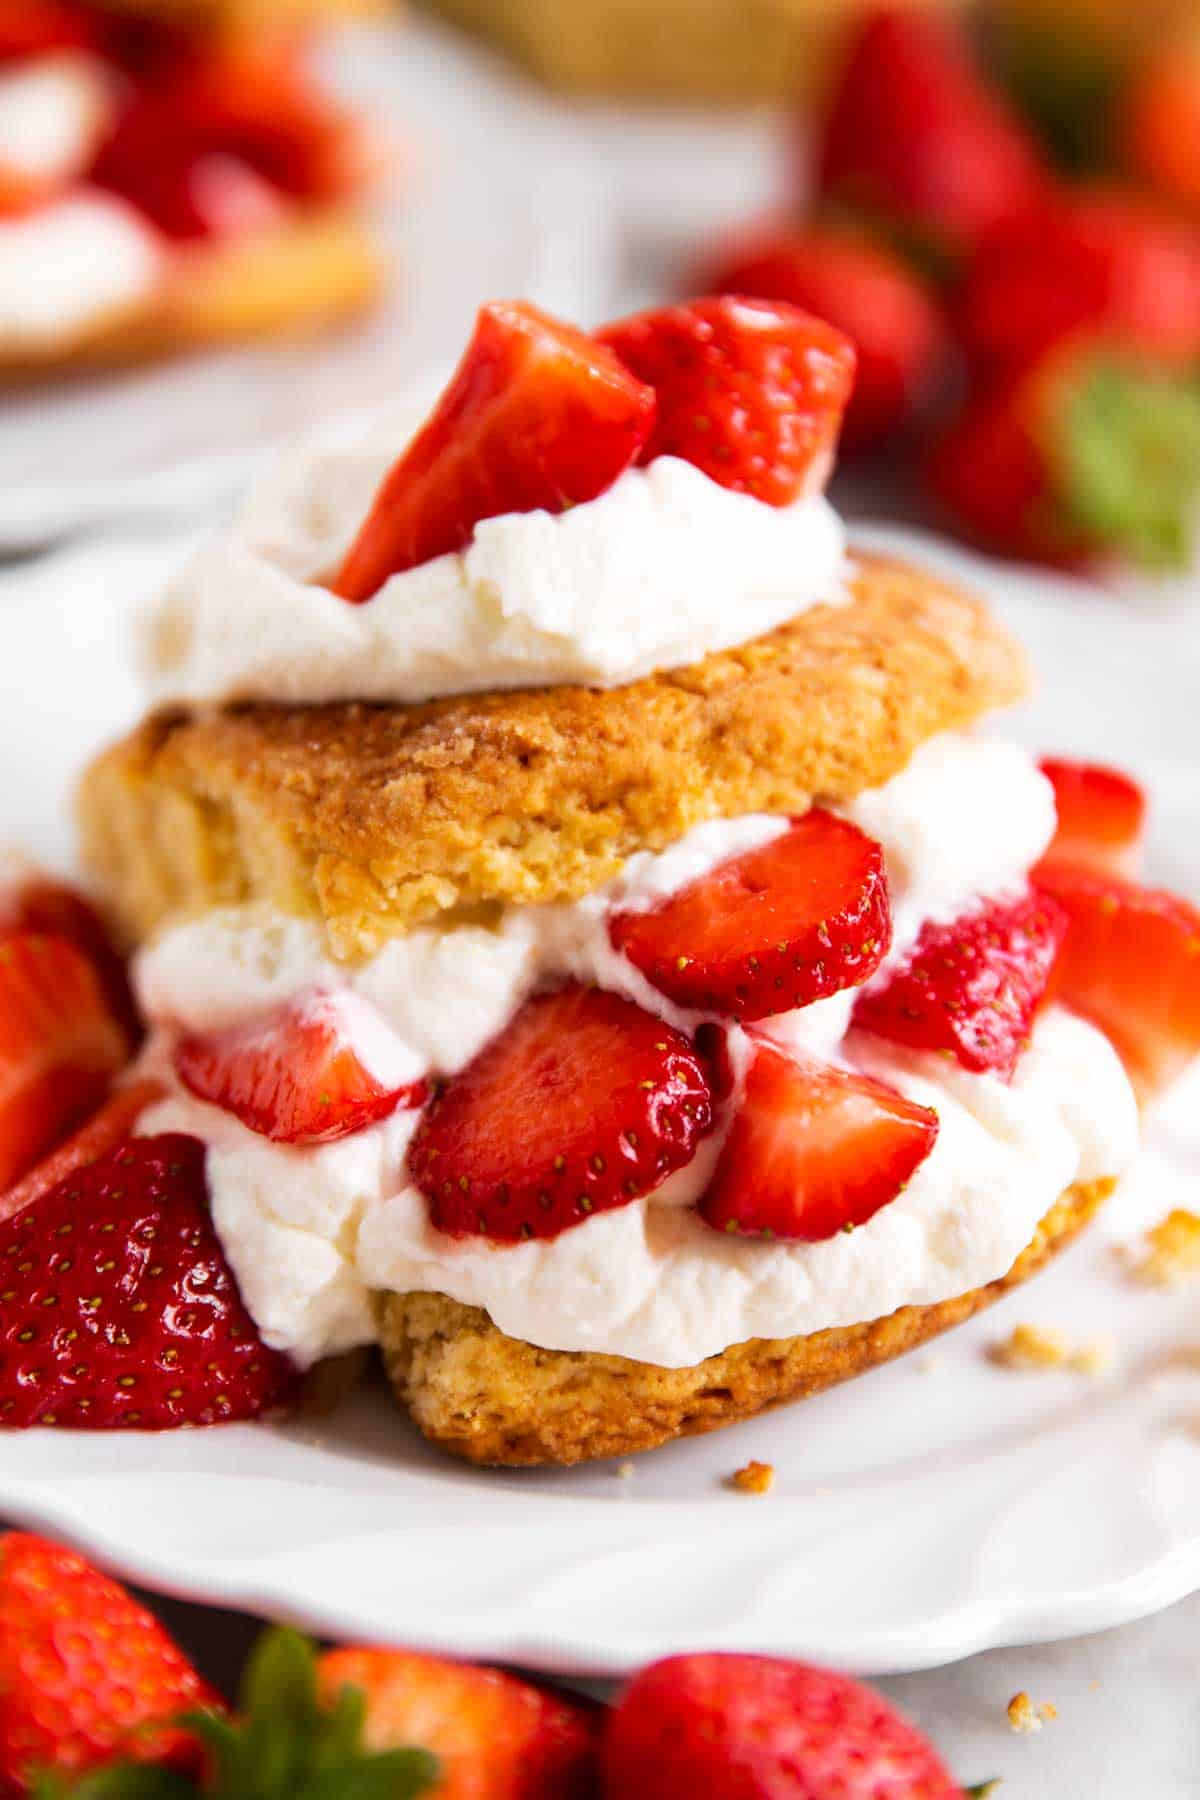 angled view of strawberry shortcake on white plate surrounded by fresh strawberries